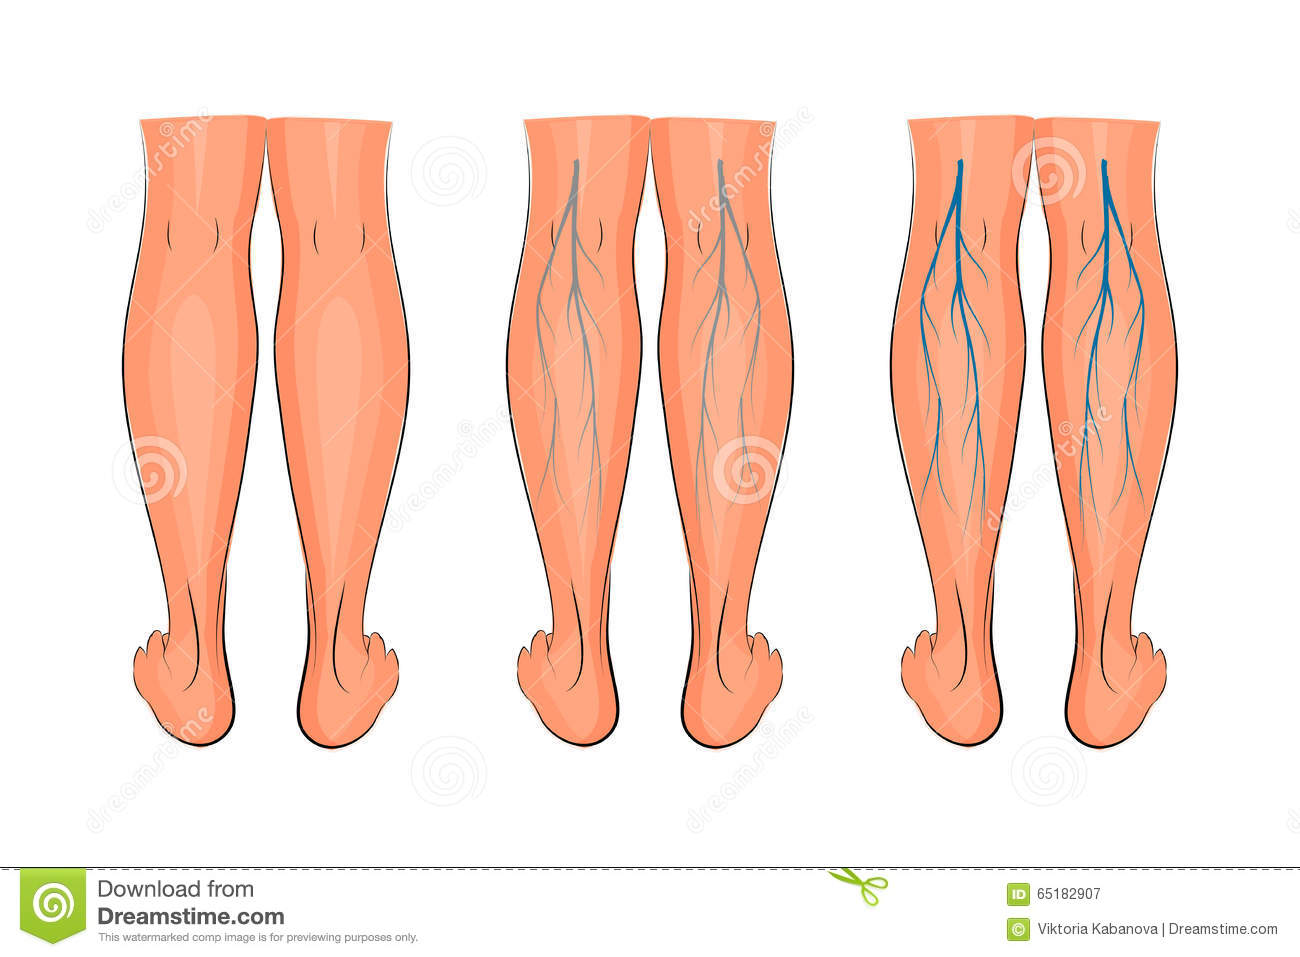 Varicose Veins Of The Lower Extremities Stock Vector - Illustration ...